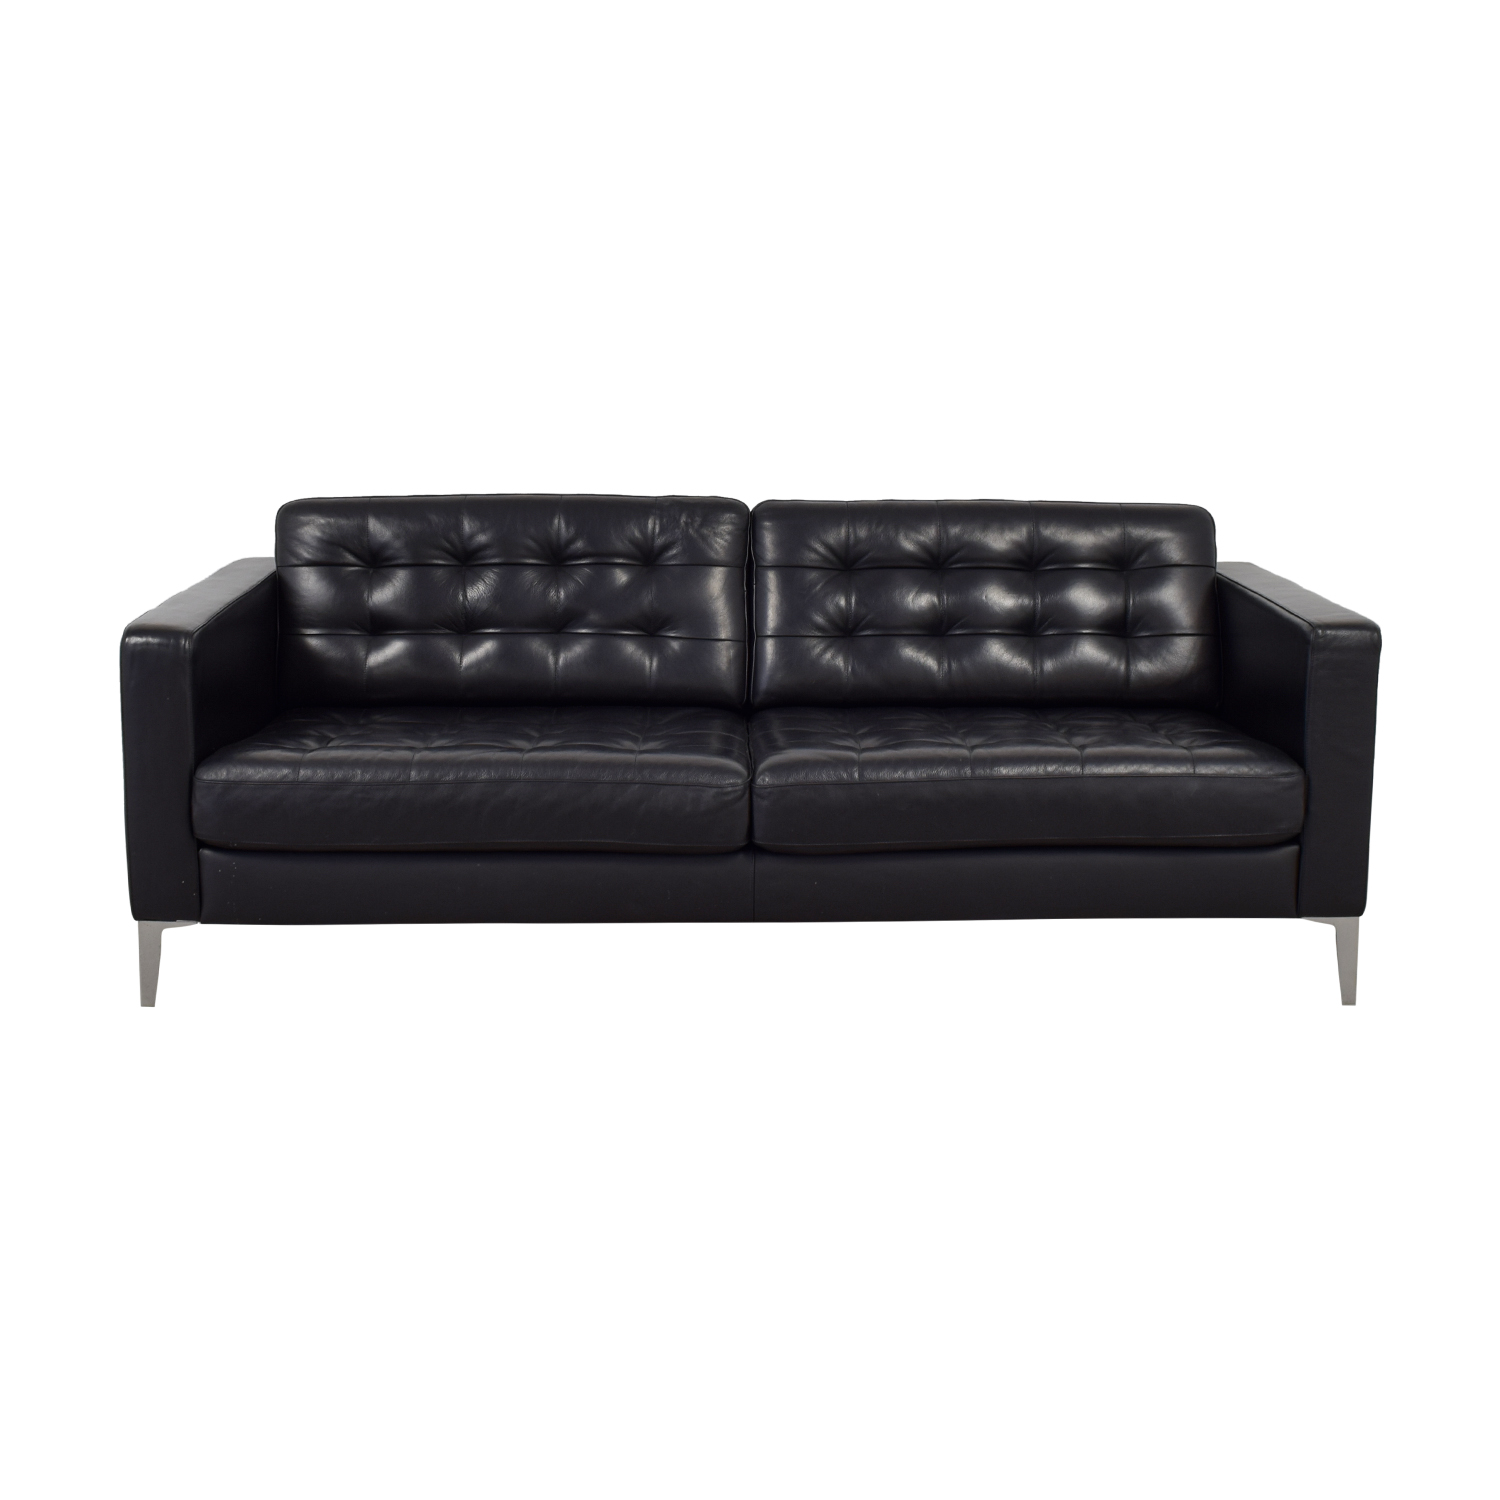 59 Off Ikea Ikea Karlstad Grann Black Tufted Leather Sofa Sofas